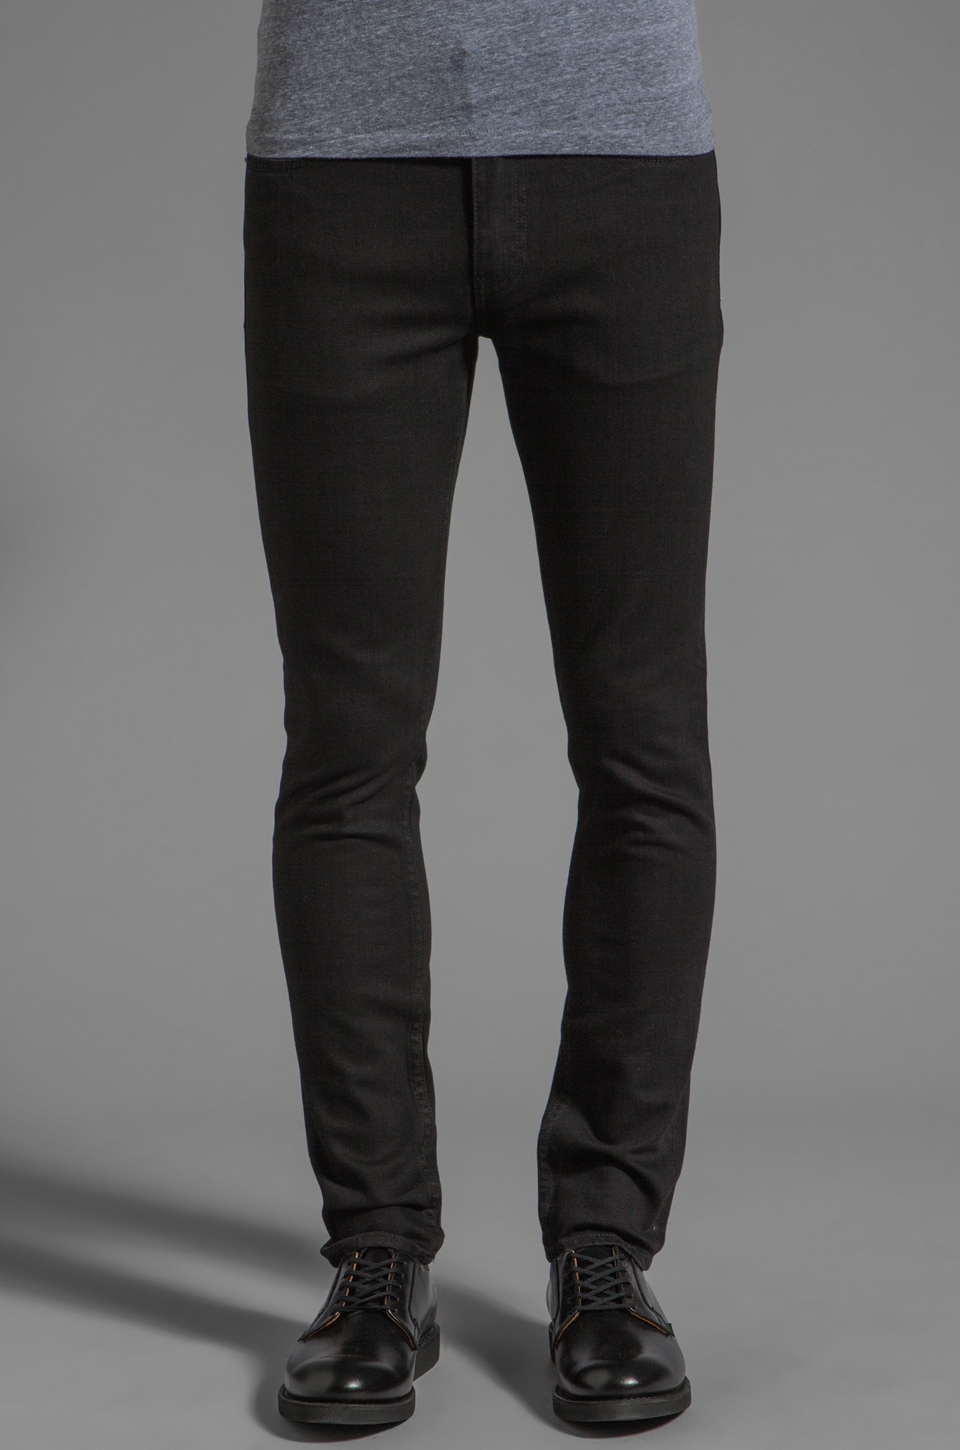 BLK DNM Jean 25 32 Inseam in Ludlow Black